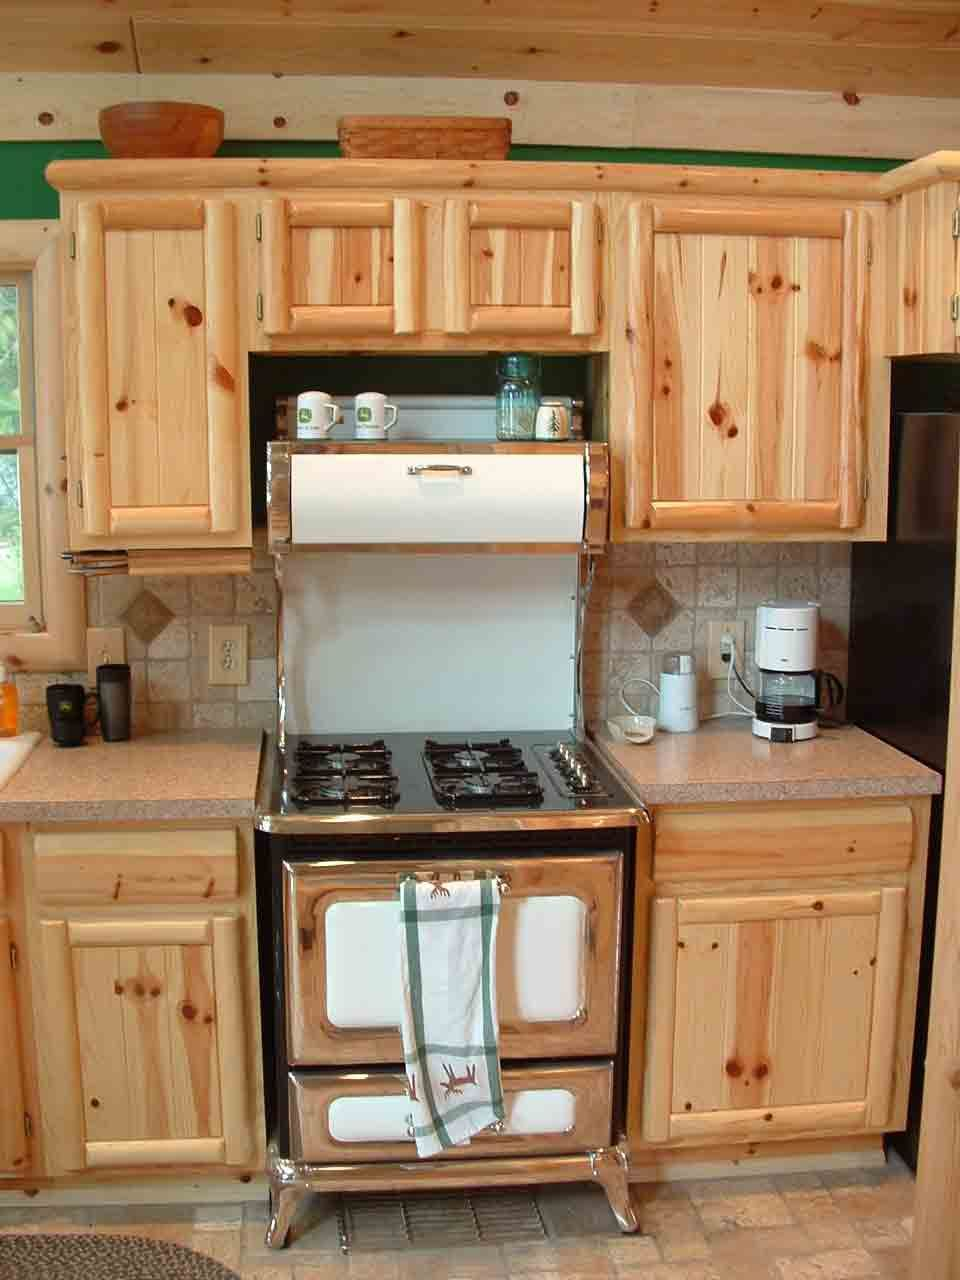 Knotty Pine Kitchen Cabinets A Premium Traditional Choice Designalls In 2020 Unfinished Kitchen Cabinets Pine Kitchen Cabinets Wood Kitchen Cabinets